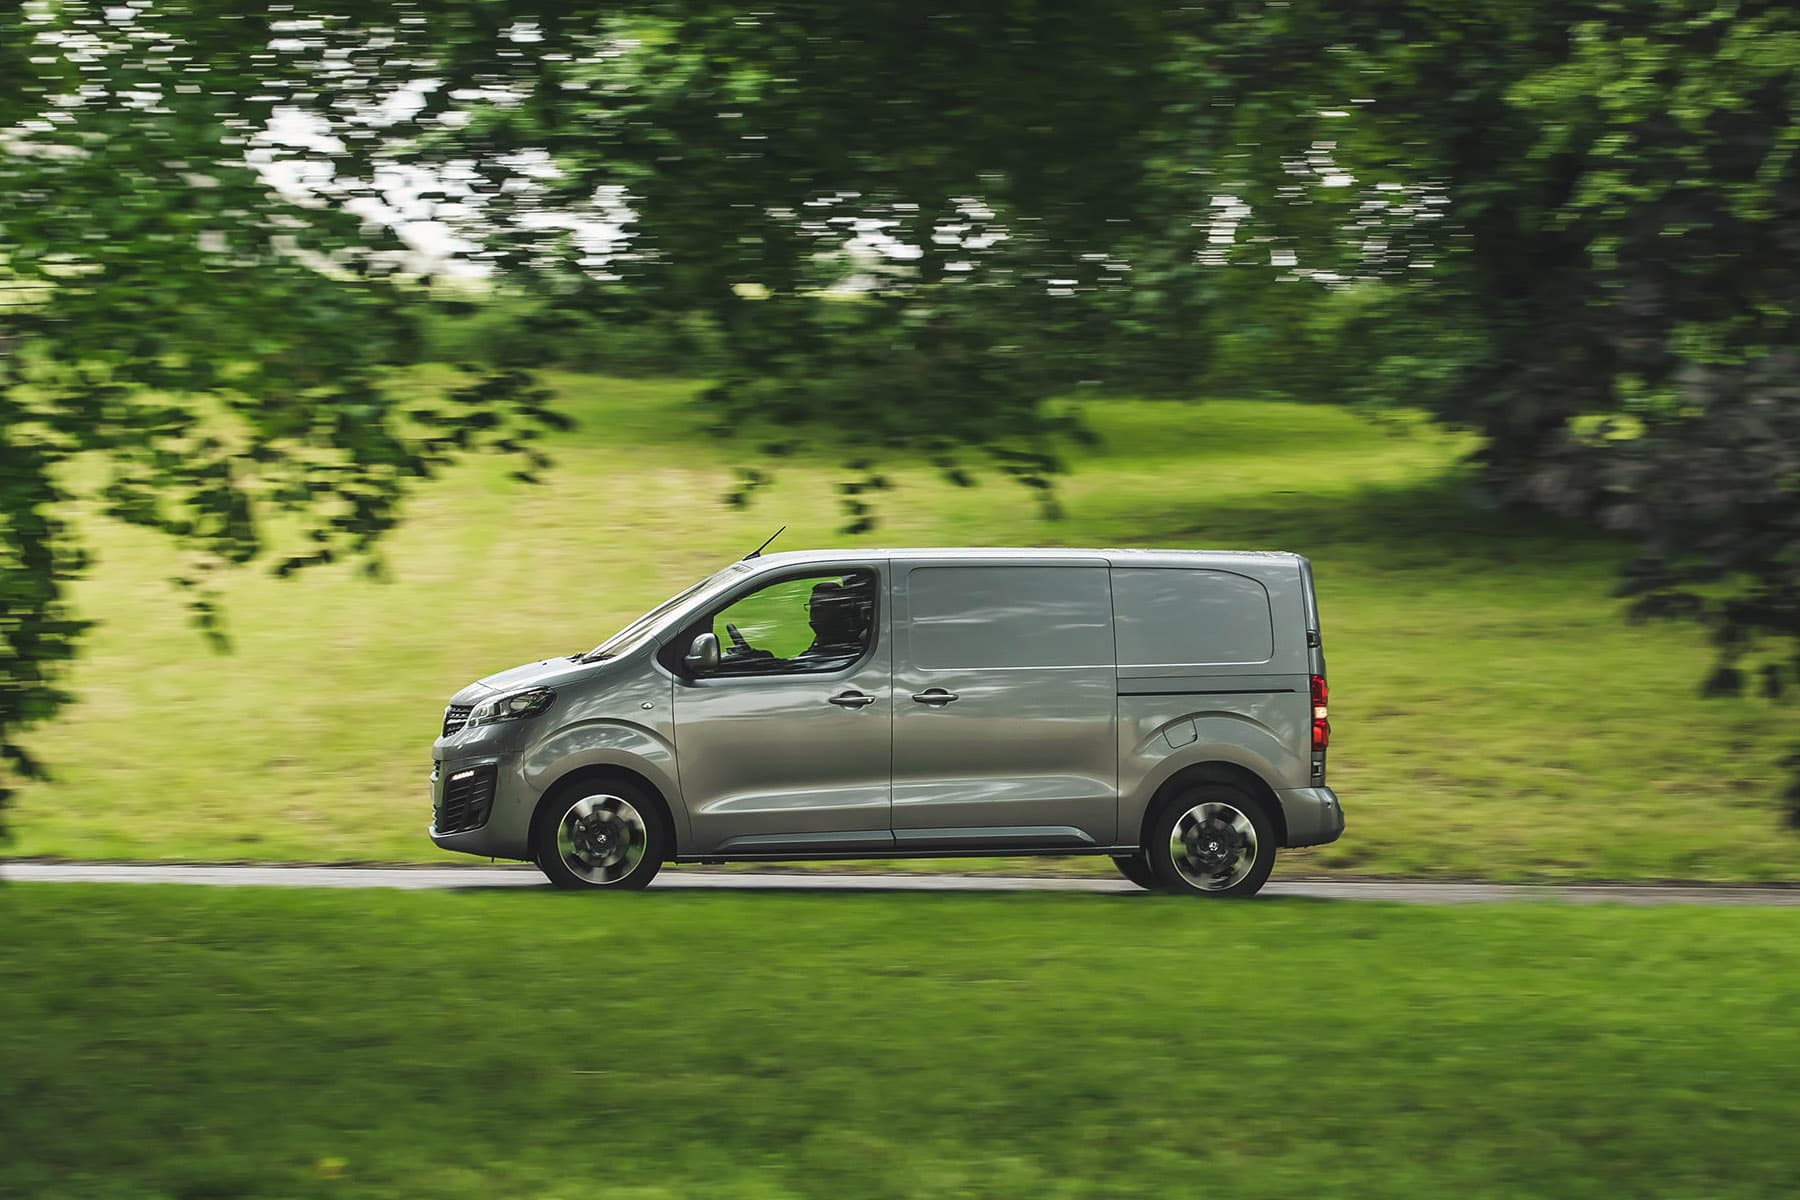 2020 Vauxhall Vivaro road test - side profile | The Van Expert